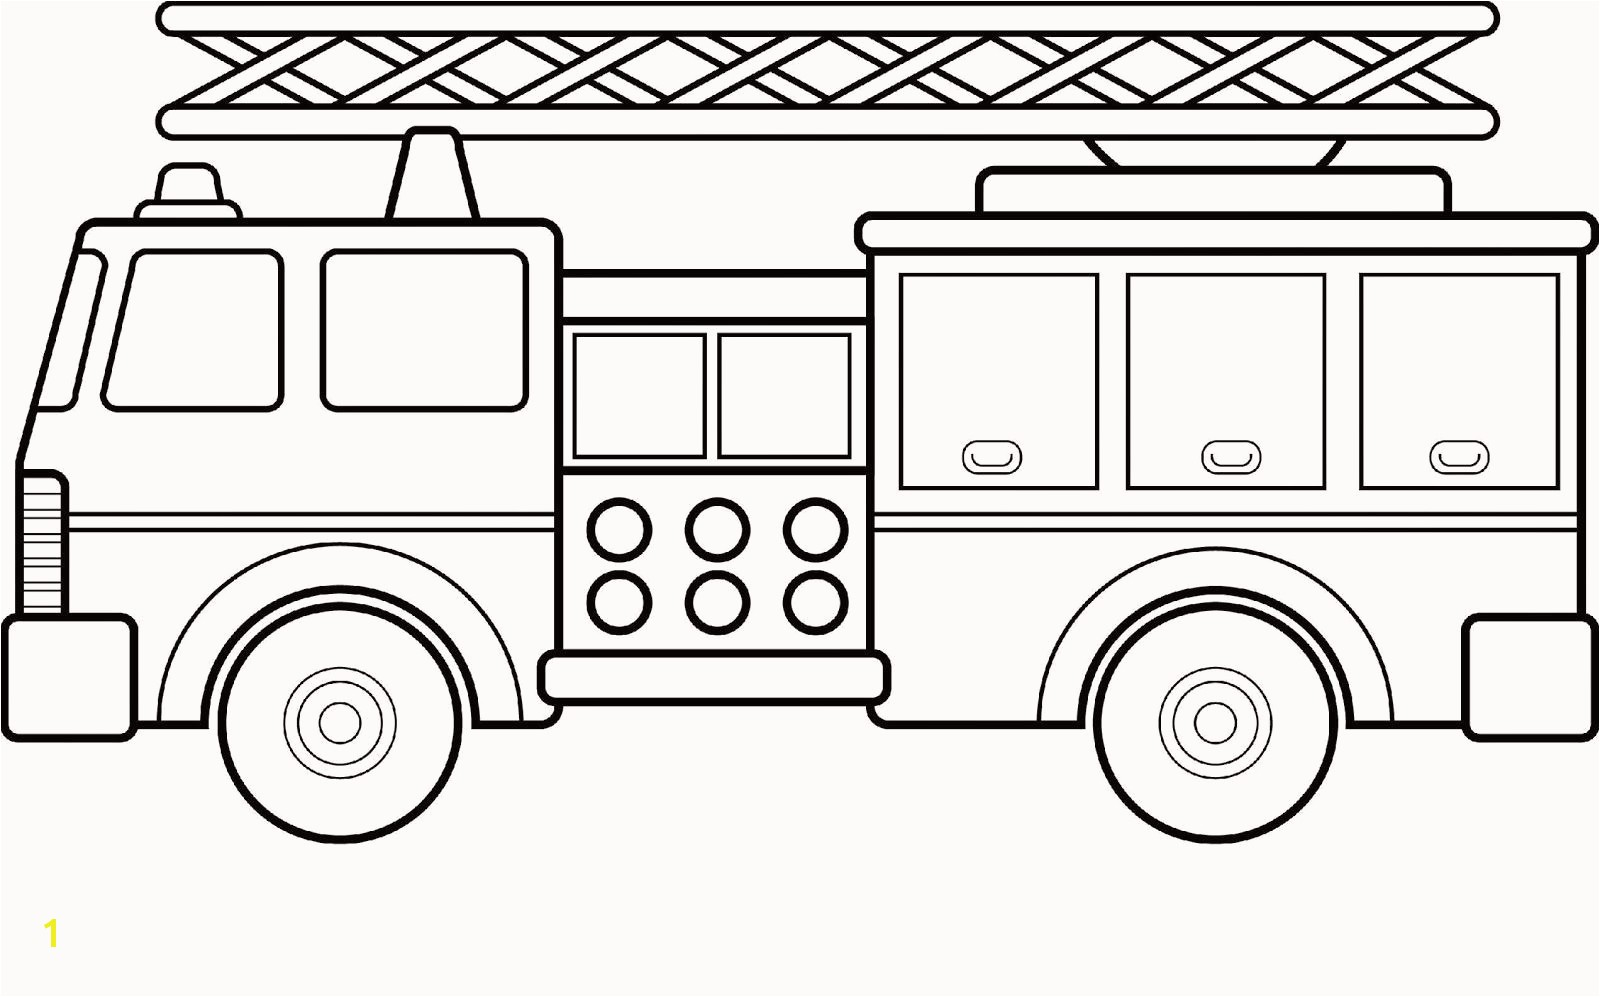 Printable Bigfoot Coloring Pages Amazing Printable Coloring Pages Trucks Fresh Free Printable Fire Truck